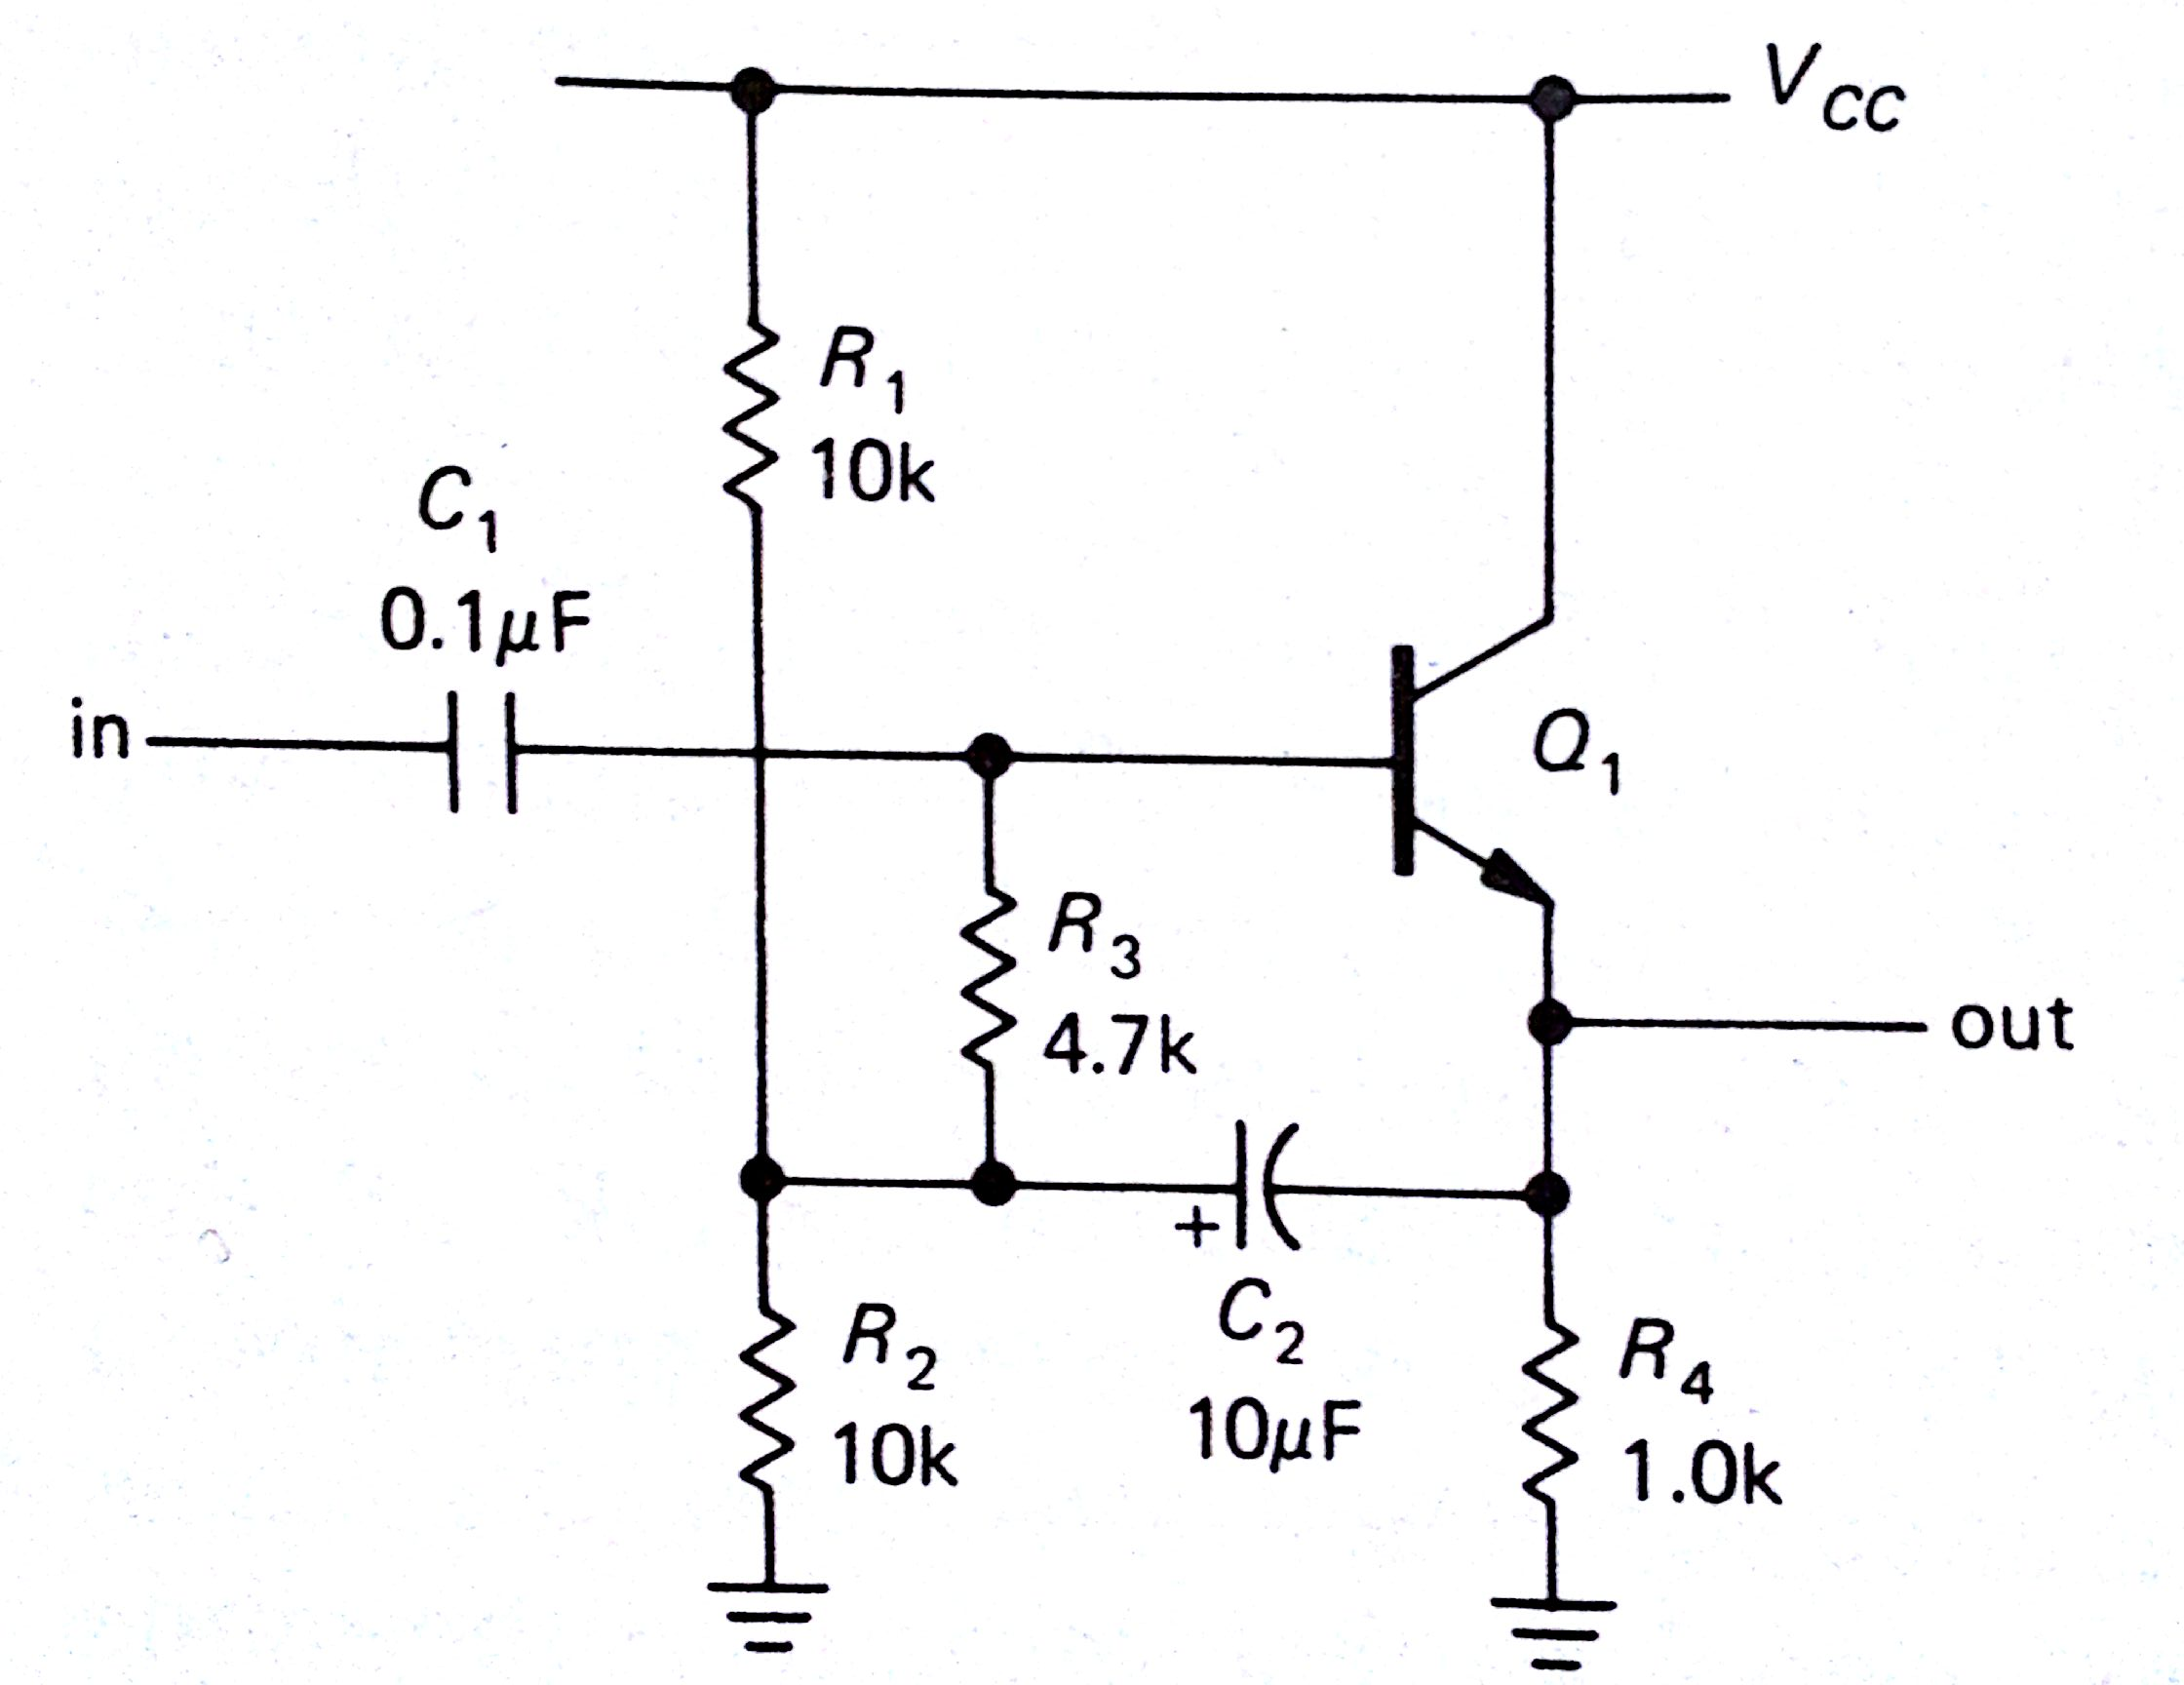 circuit diagram of non inverting amplifier 97 s10 brake light wiring why are op amp amplifiers used in most cases